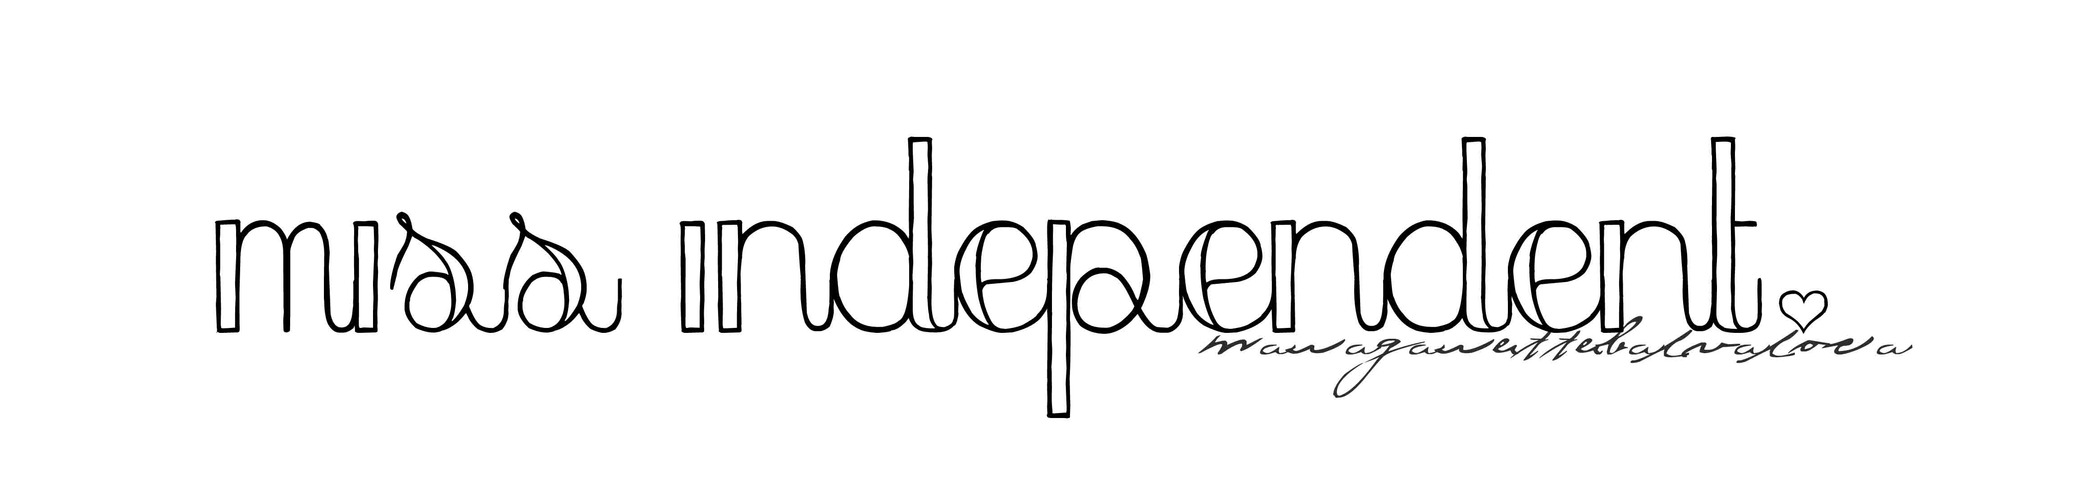 miss independent quotes tumblr - photo #5